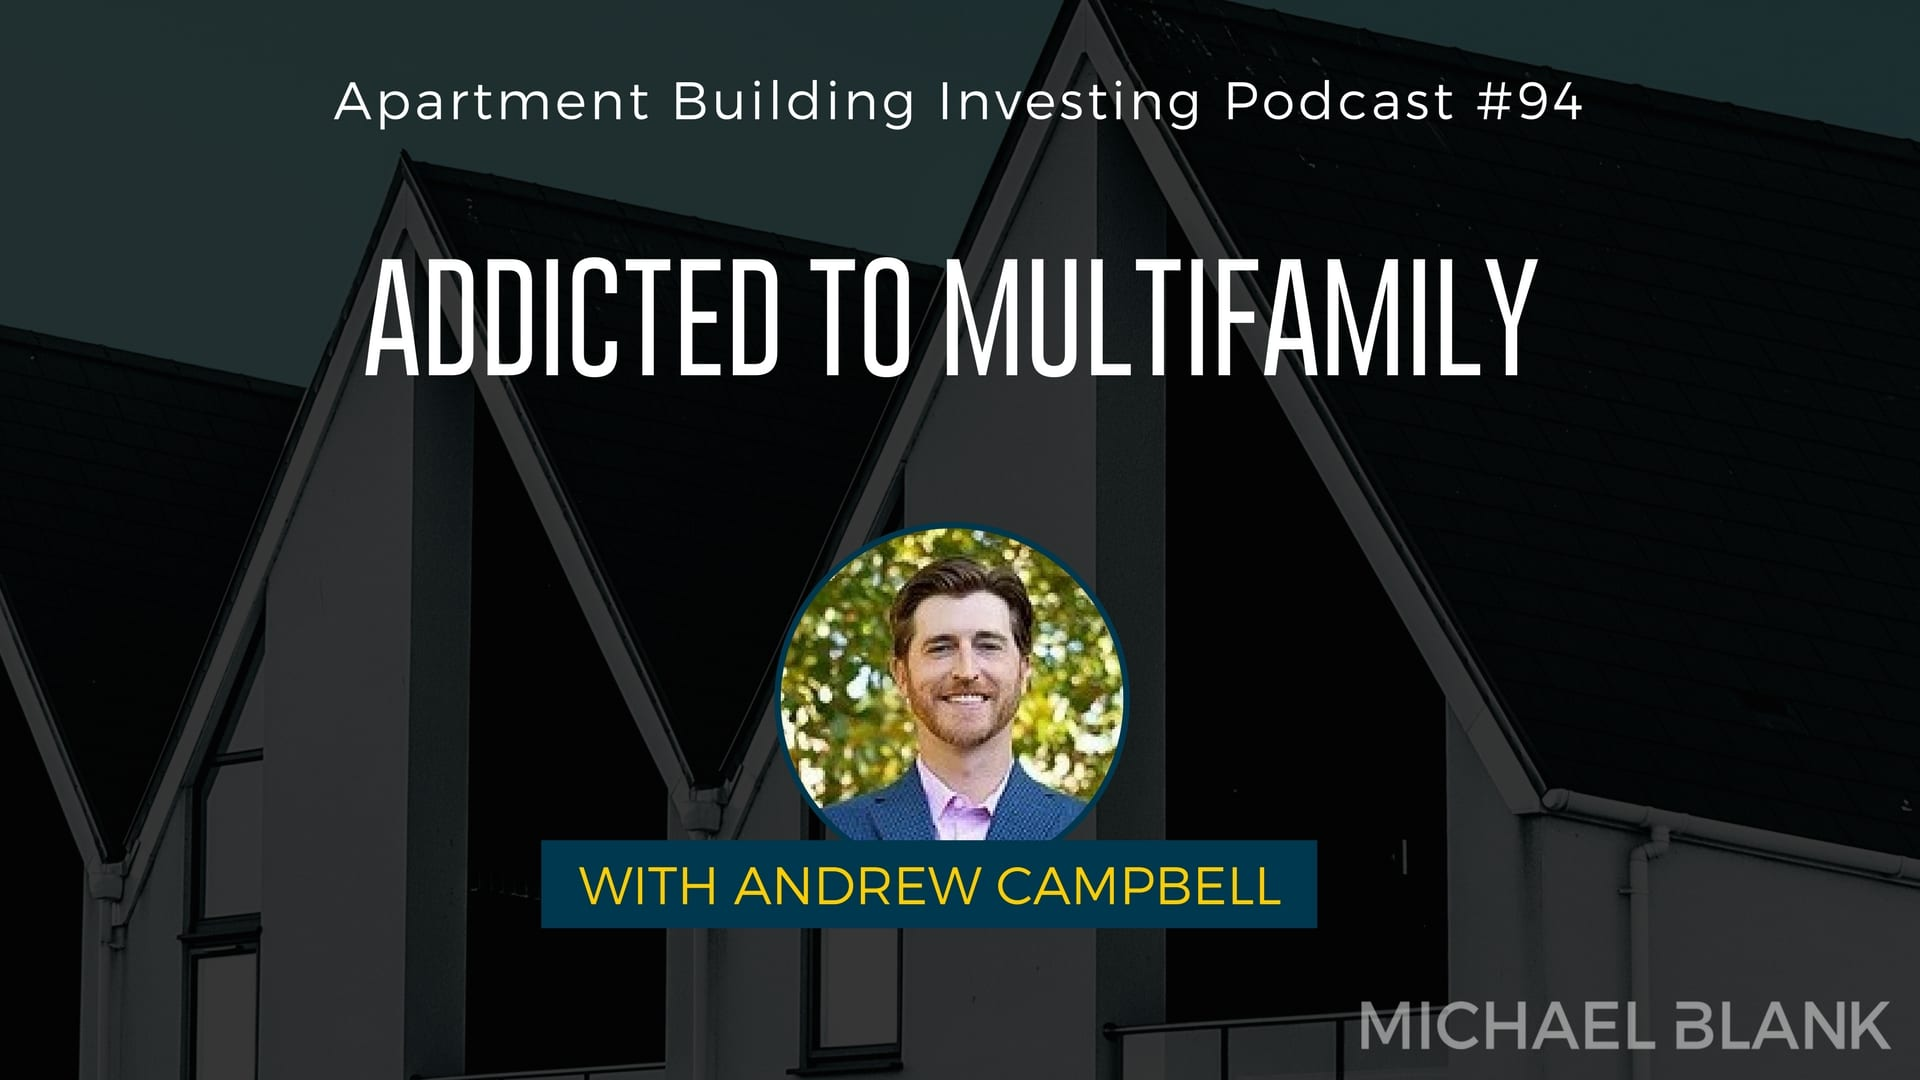 MB 094: Addicted to Multifamily with Andrew Campbell